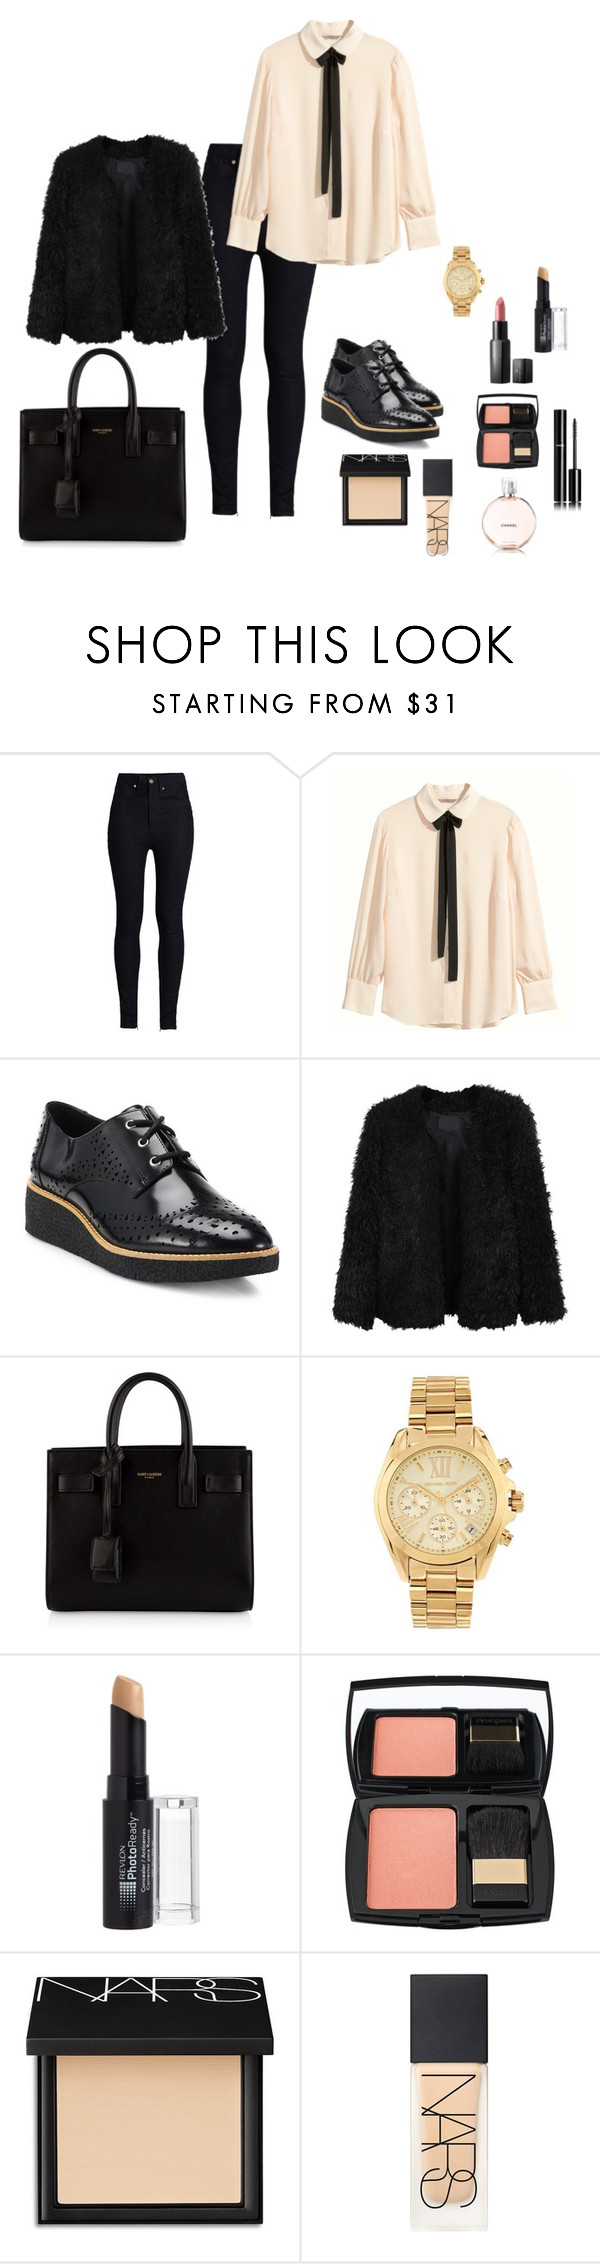 """""""M"""" by butnotperfect ❤ liked on Polyvore featuring Rodarte, H&M, Rebecca Minkoff, LE3NO, Yves Saint Laurent, Michael Kors, Revlon, Lancôme, NARS Cosmetics and Chanel"""